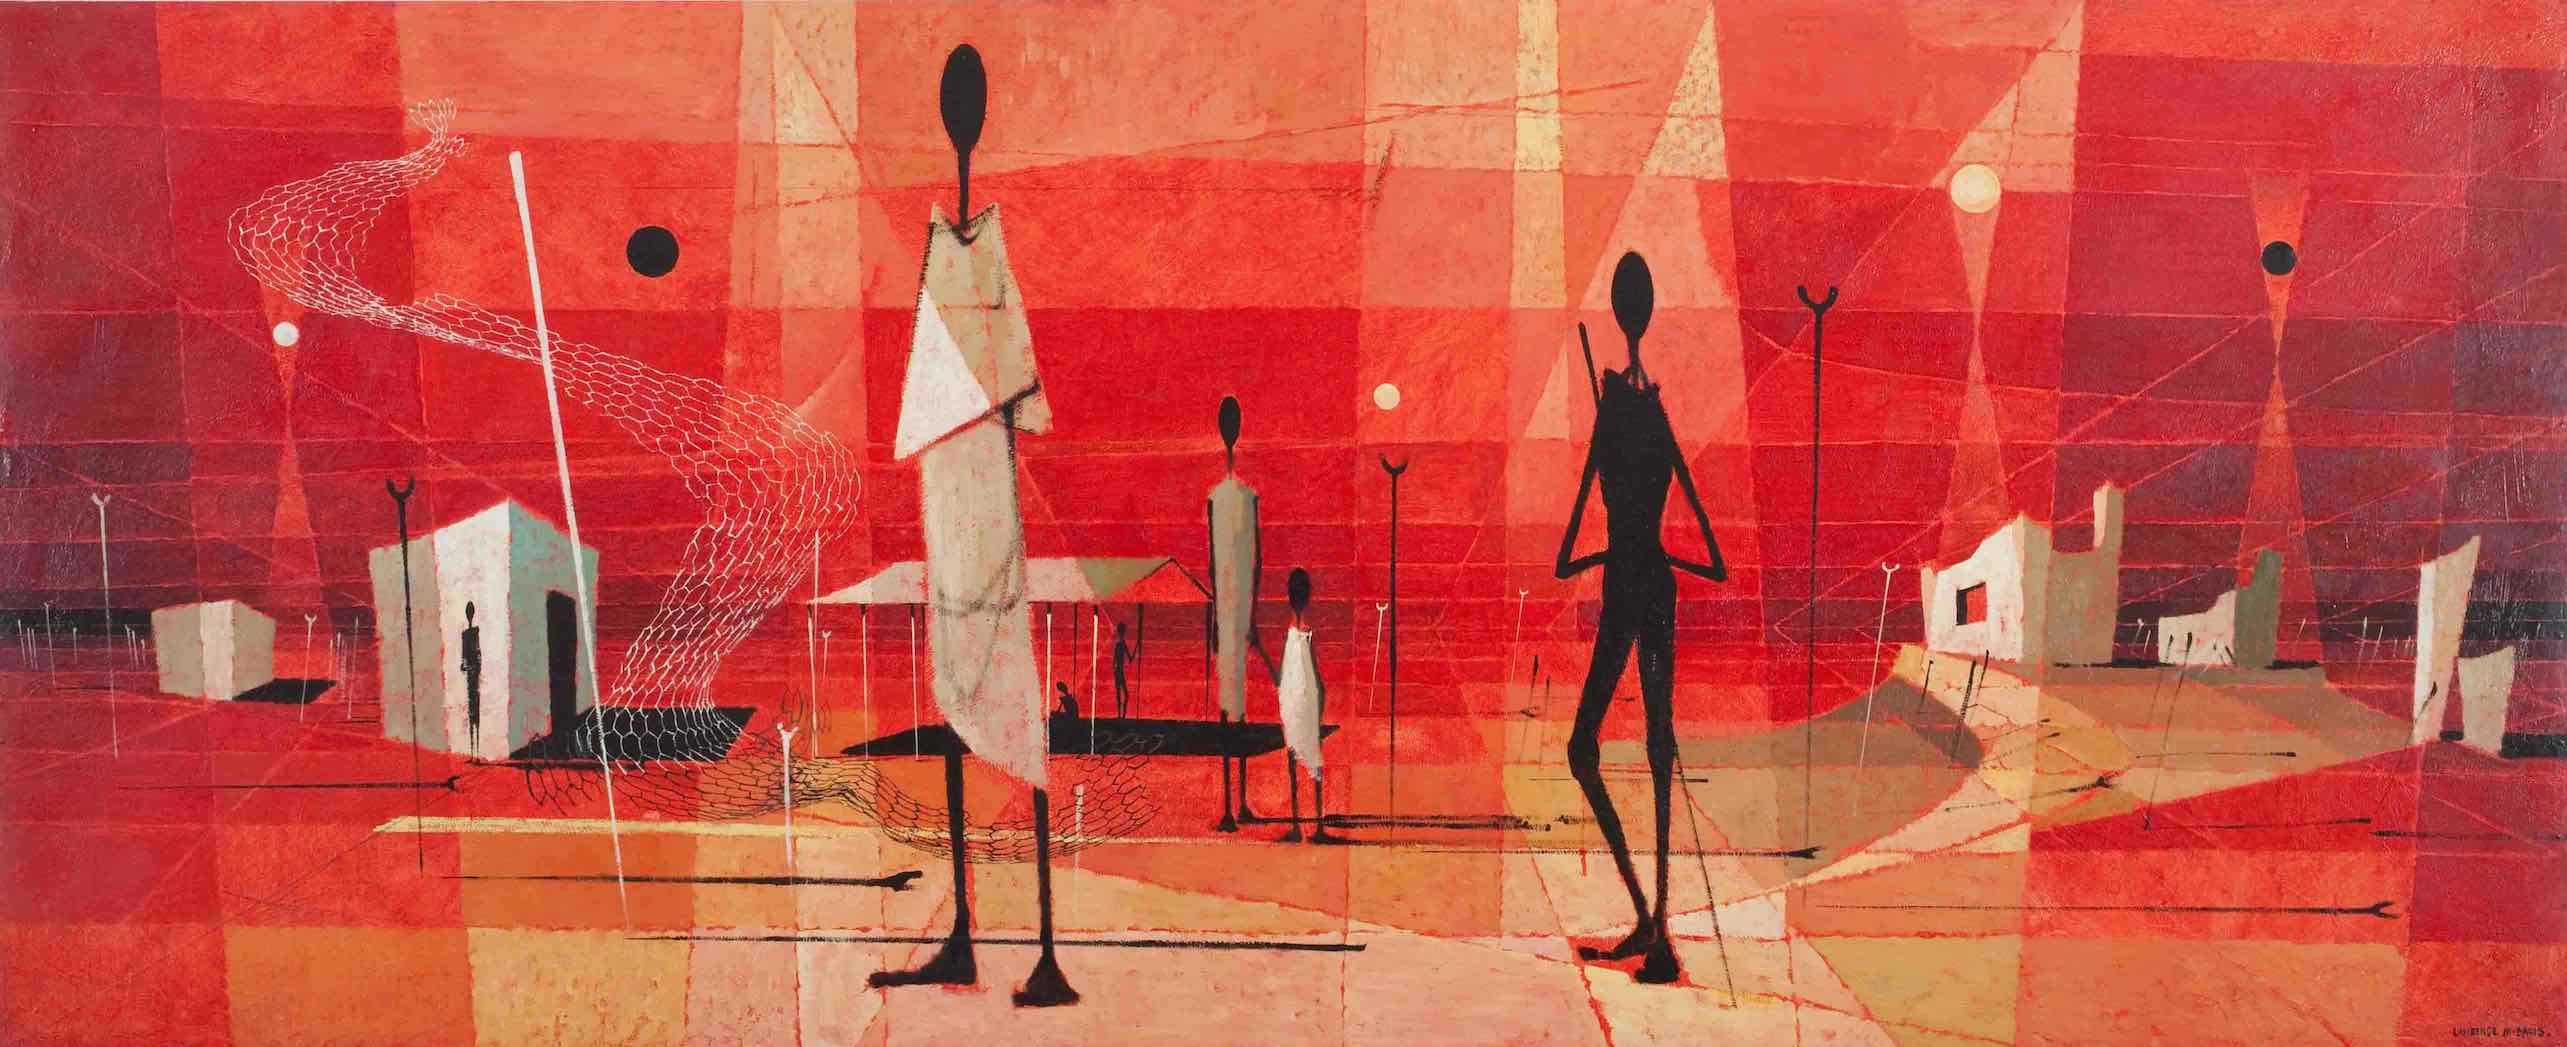 Cubist style painting depicting abstract Aboriginal camp with stick-like figures